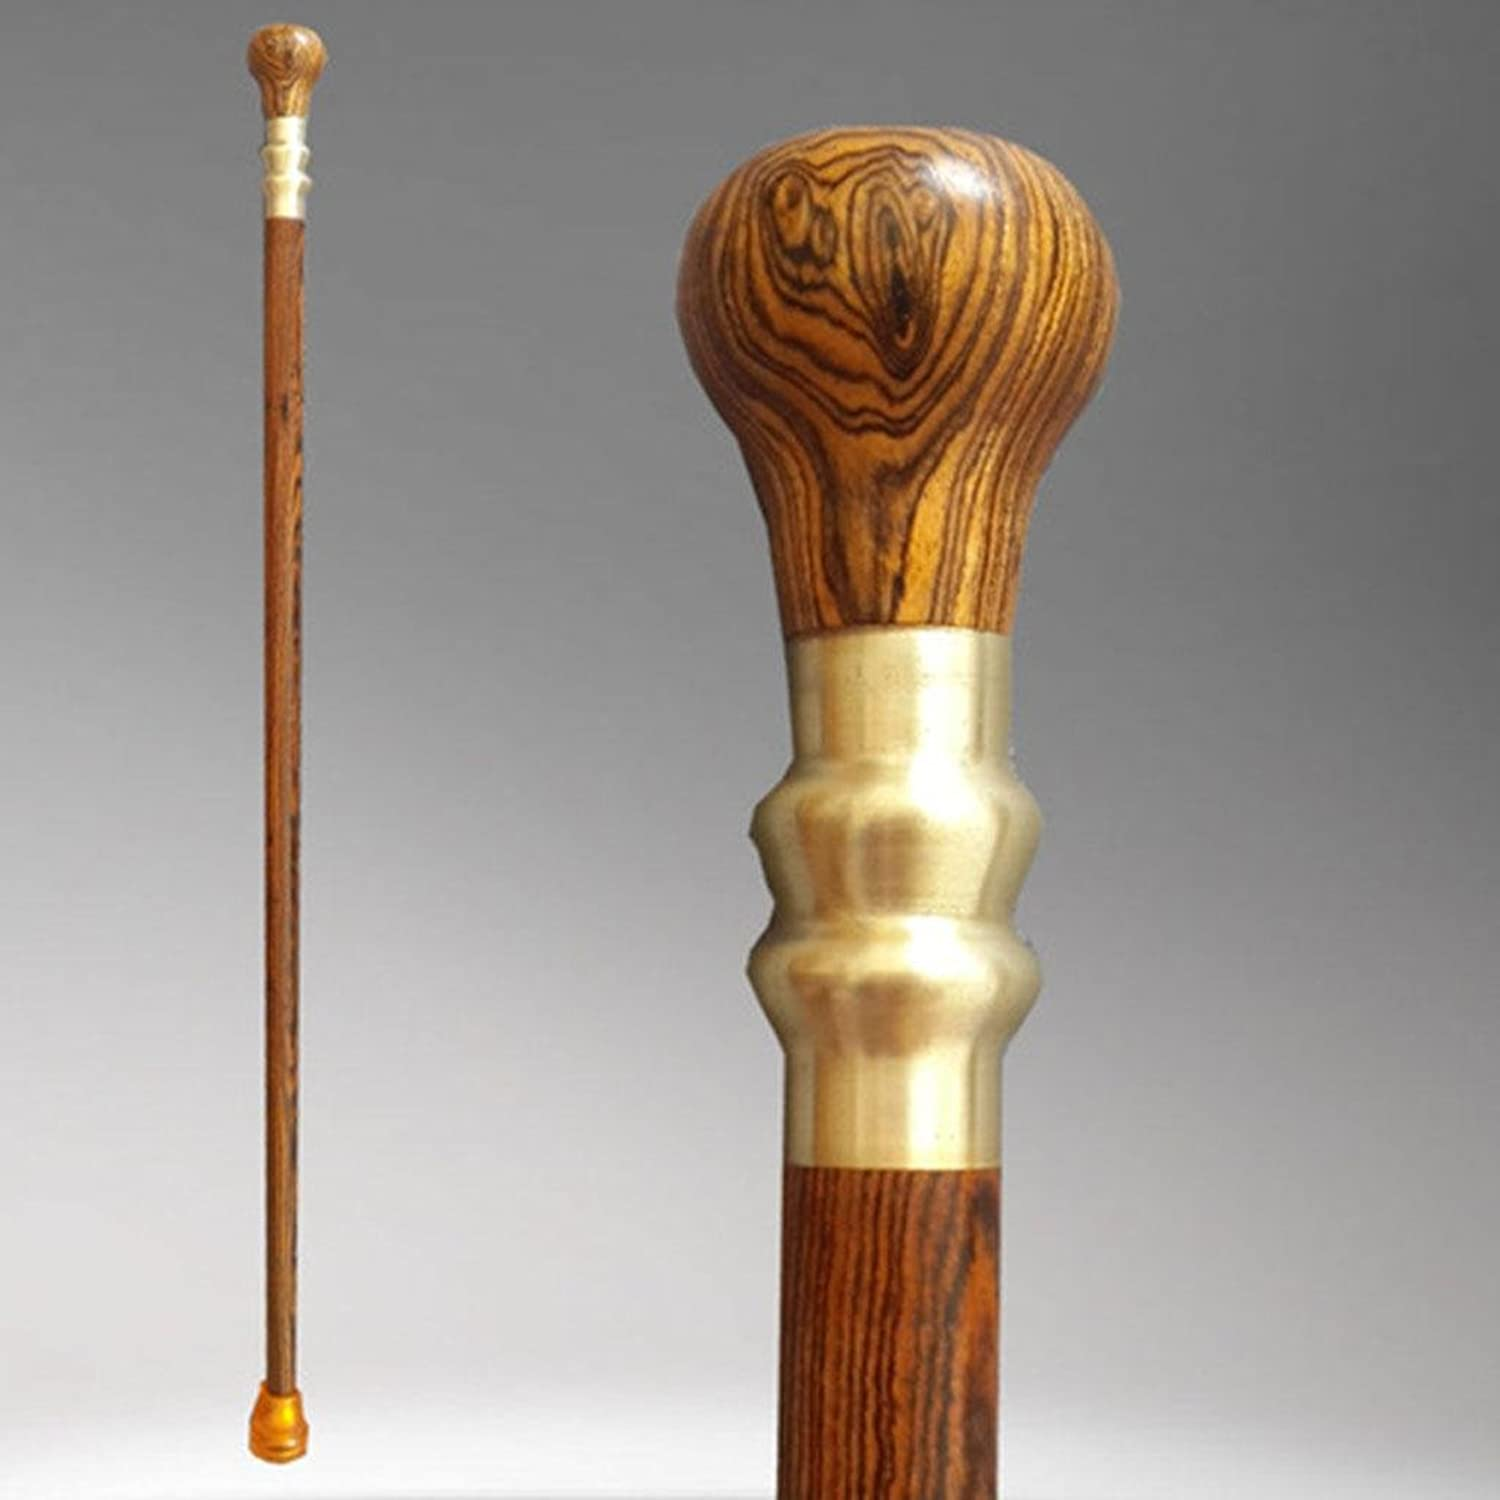 Wooden Walking   Hiking Stick with Hand-Carved Deer Design 87cm Health Round Handle Wood Cane Natural